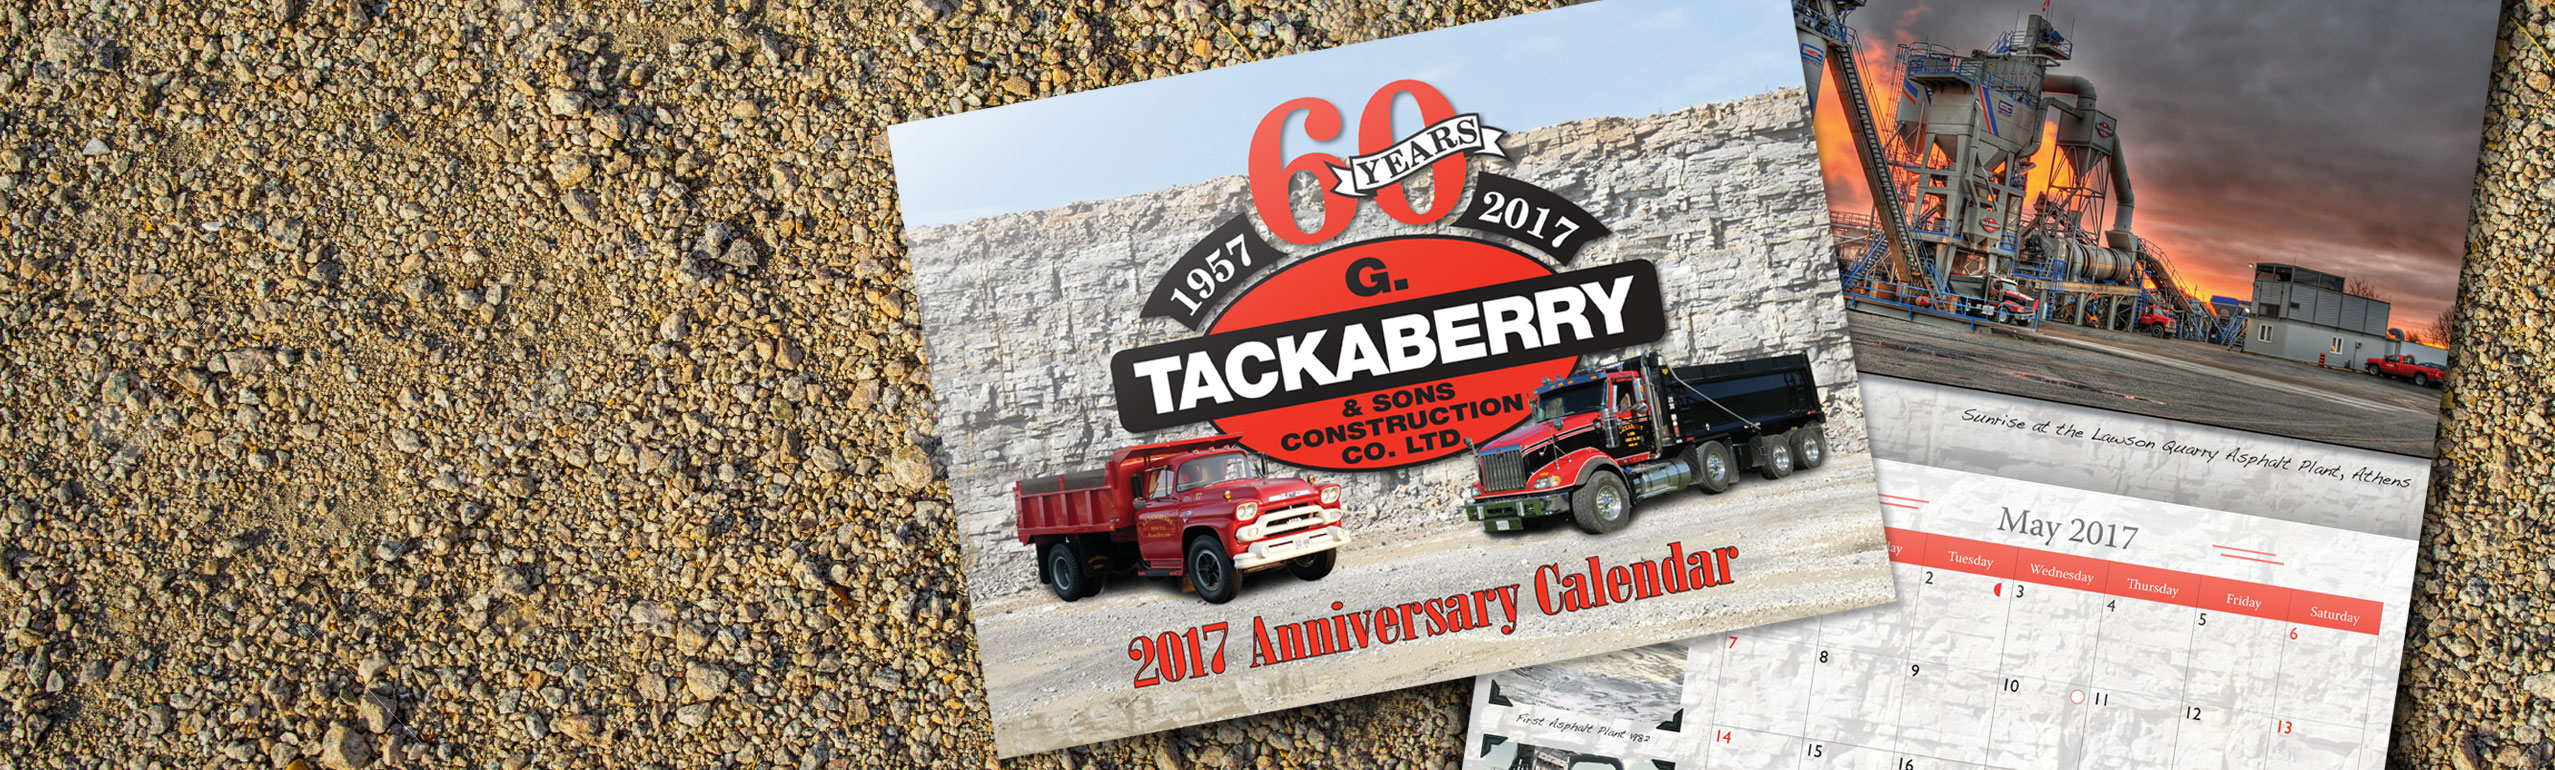 G. Tackaberry & Sons